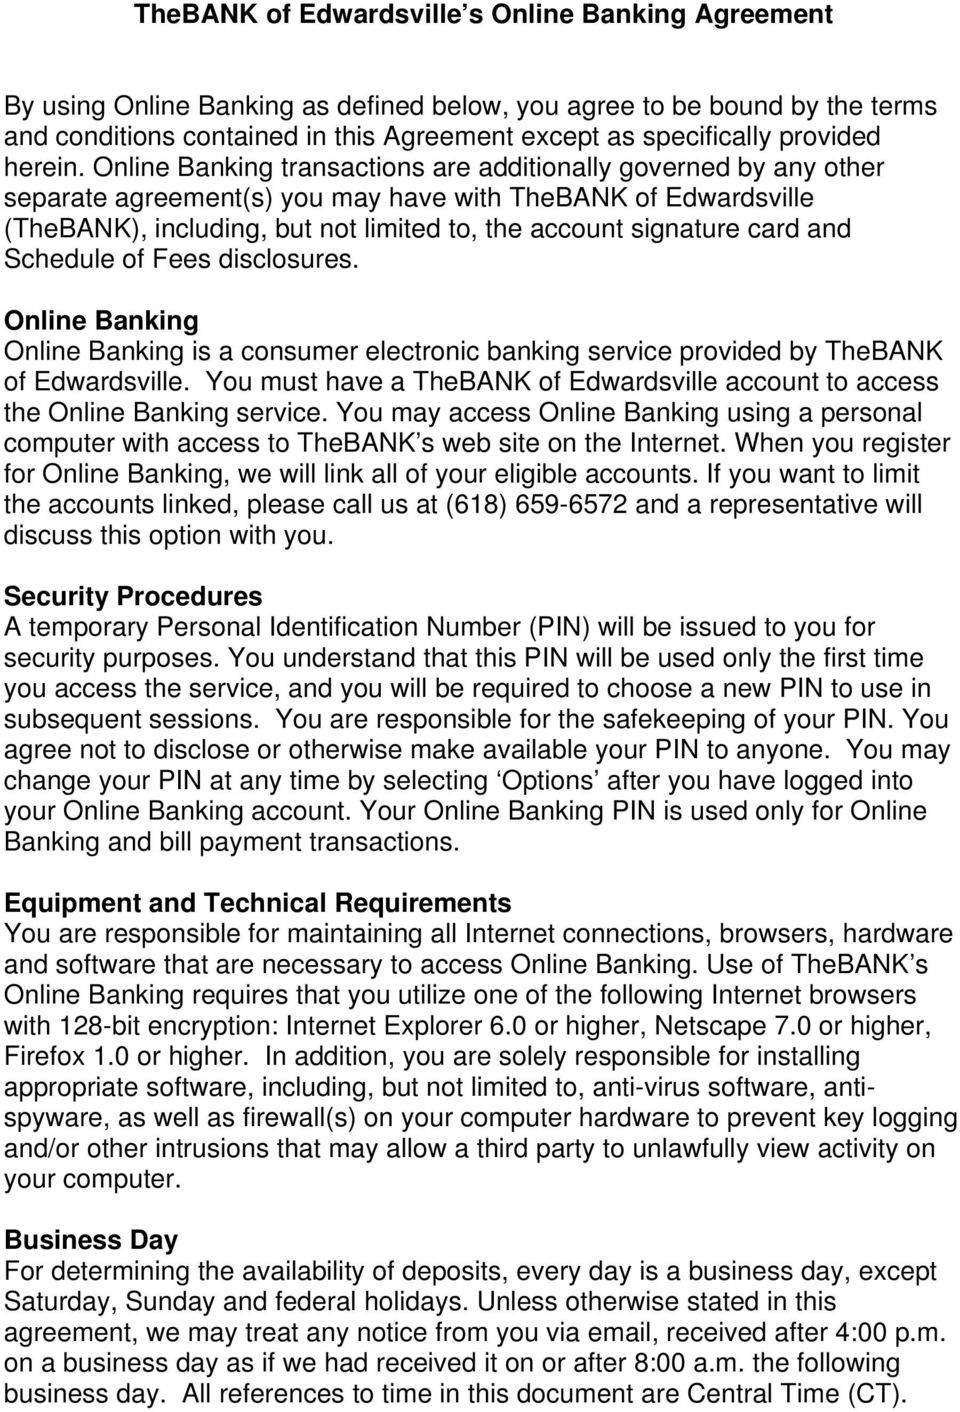 Online Banking transactions are additionally governed by any other separate agreement(s) you may have with TheBANK of Edwardsville (TheBANK), including, but not limited to, the account signature card